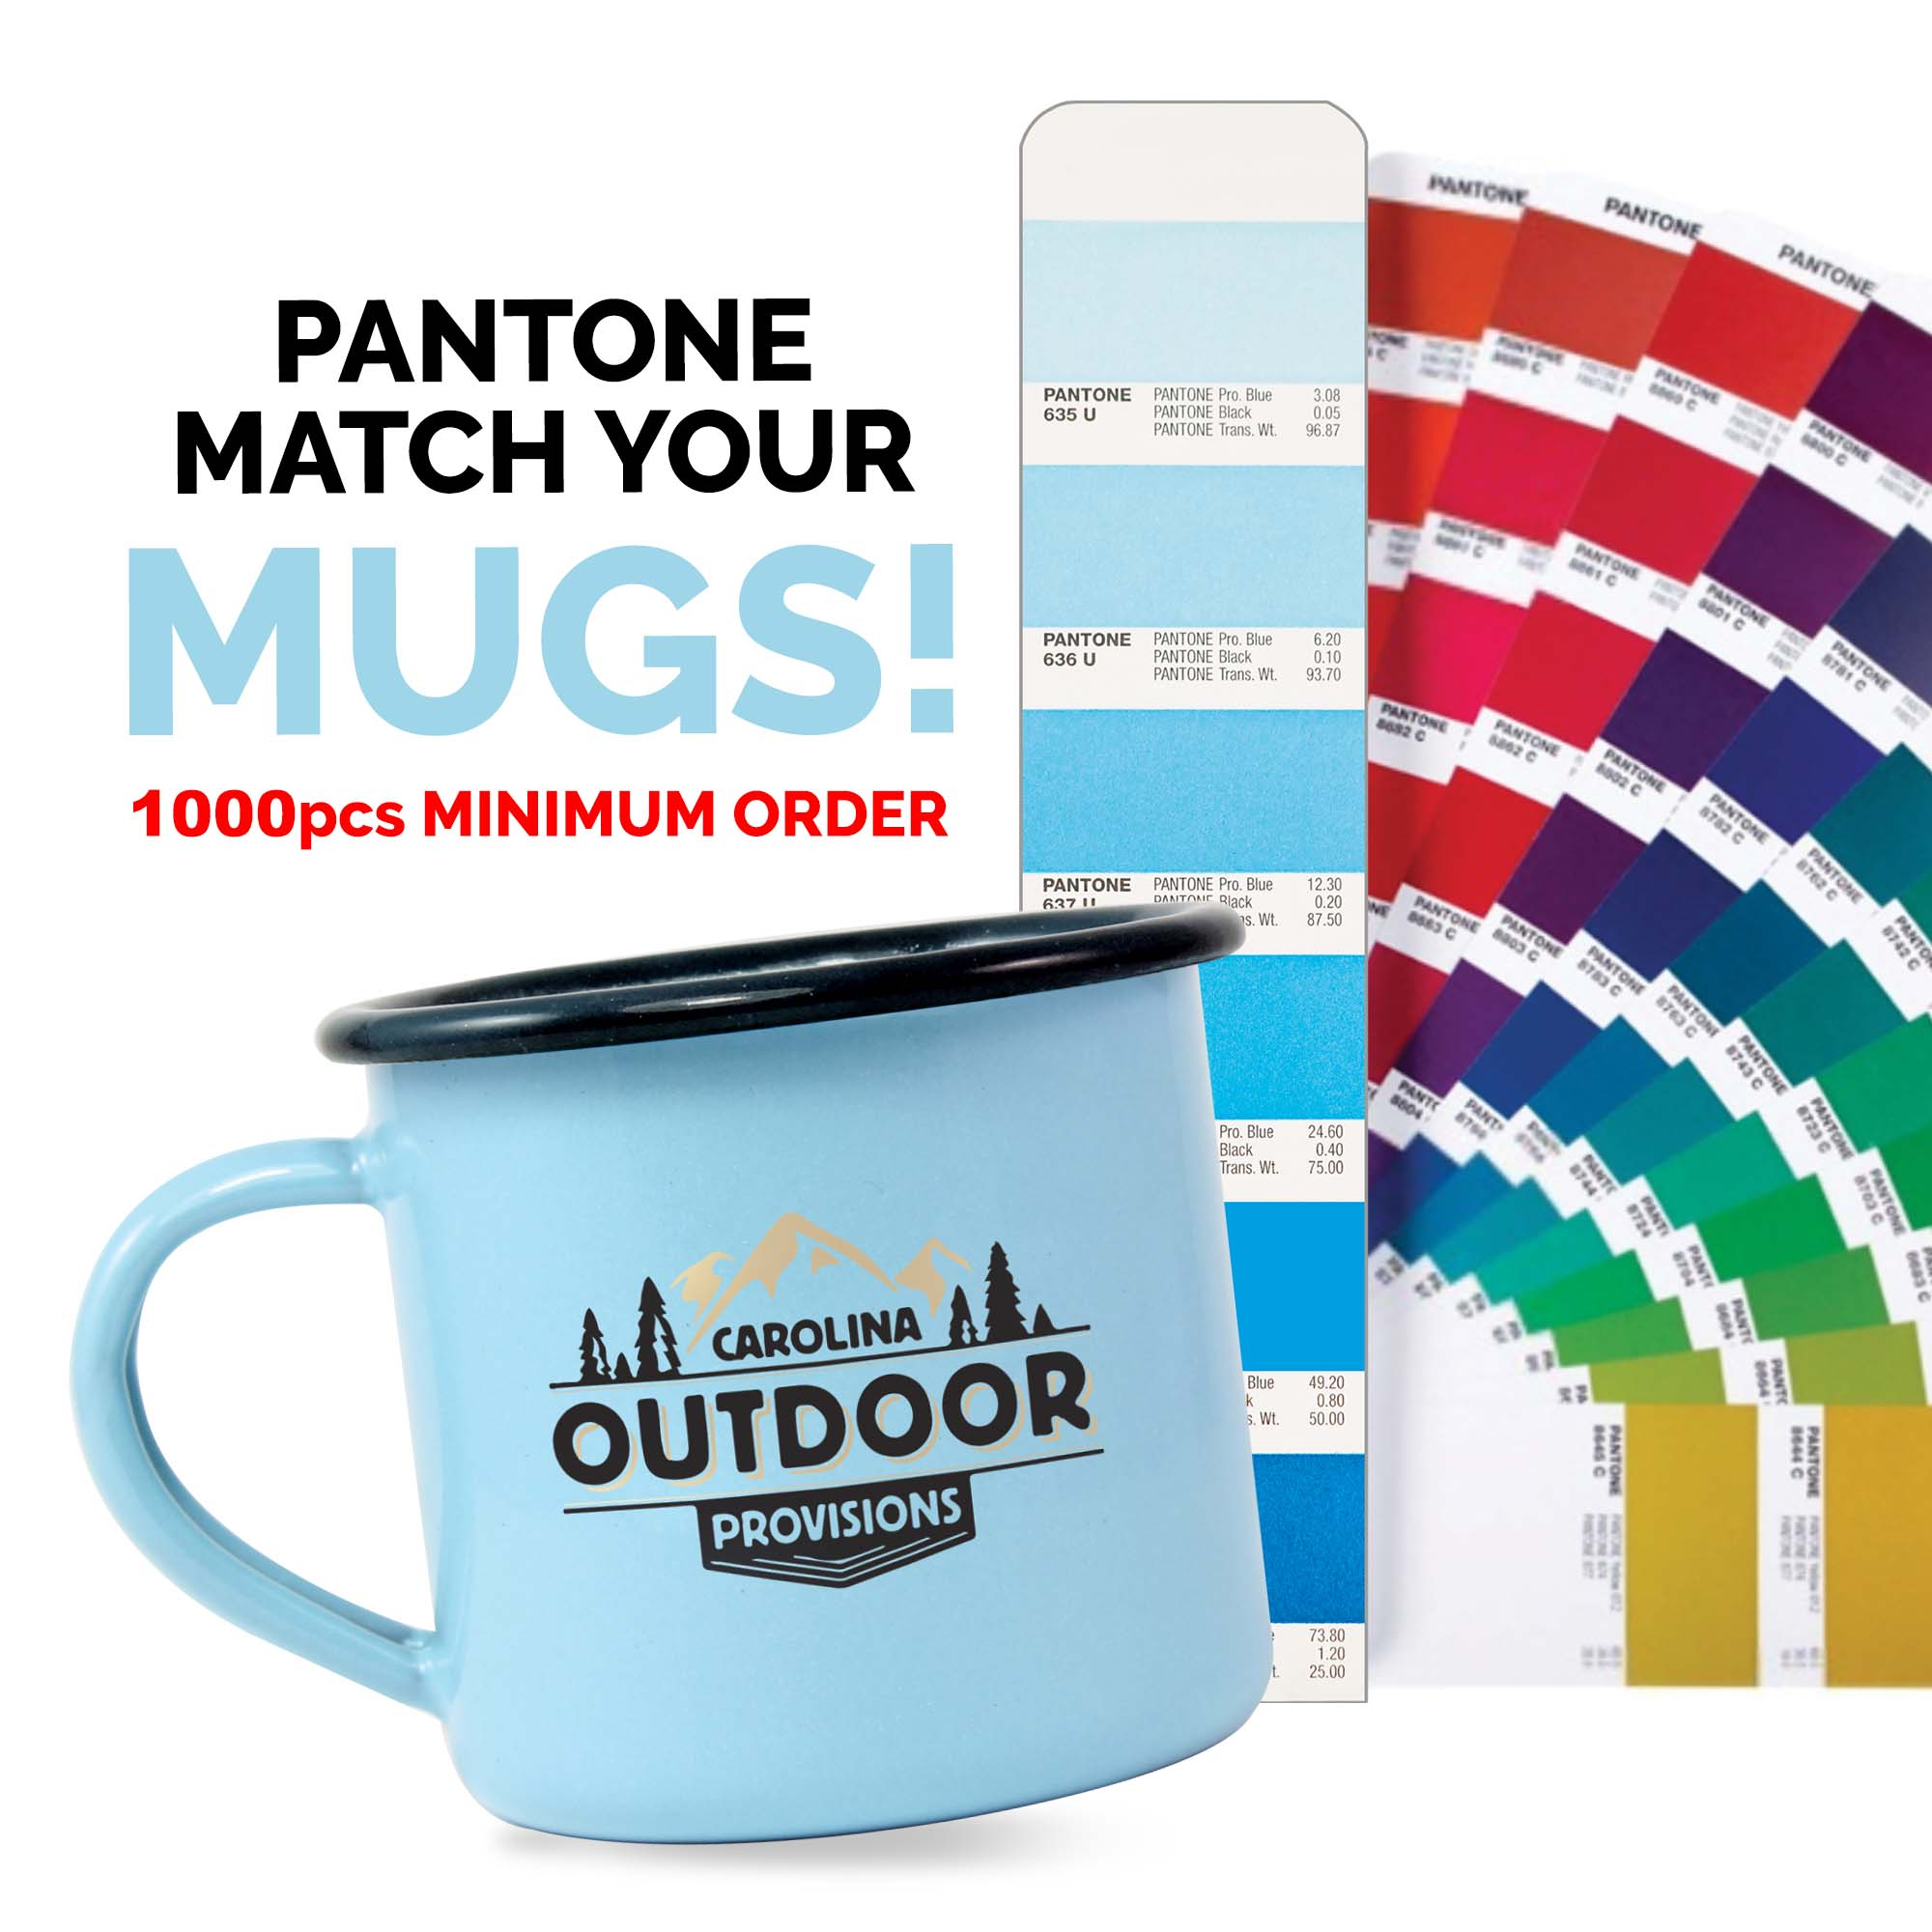 Premium Enamel Mugs 20oz/568ml (Coloured)